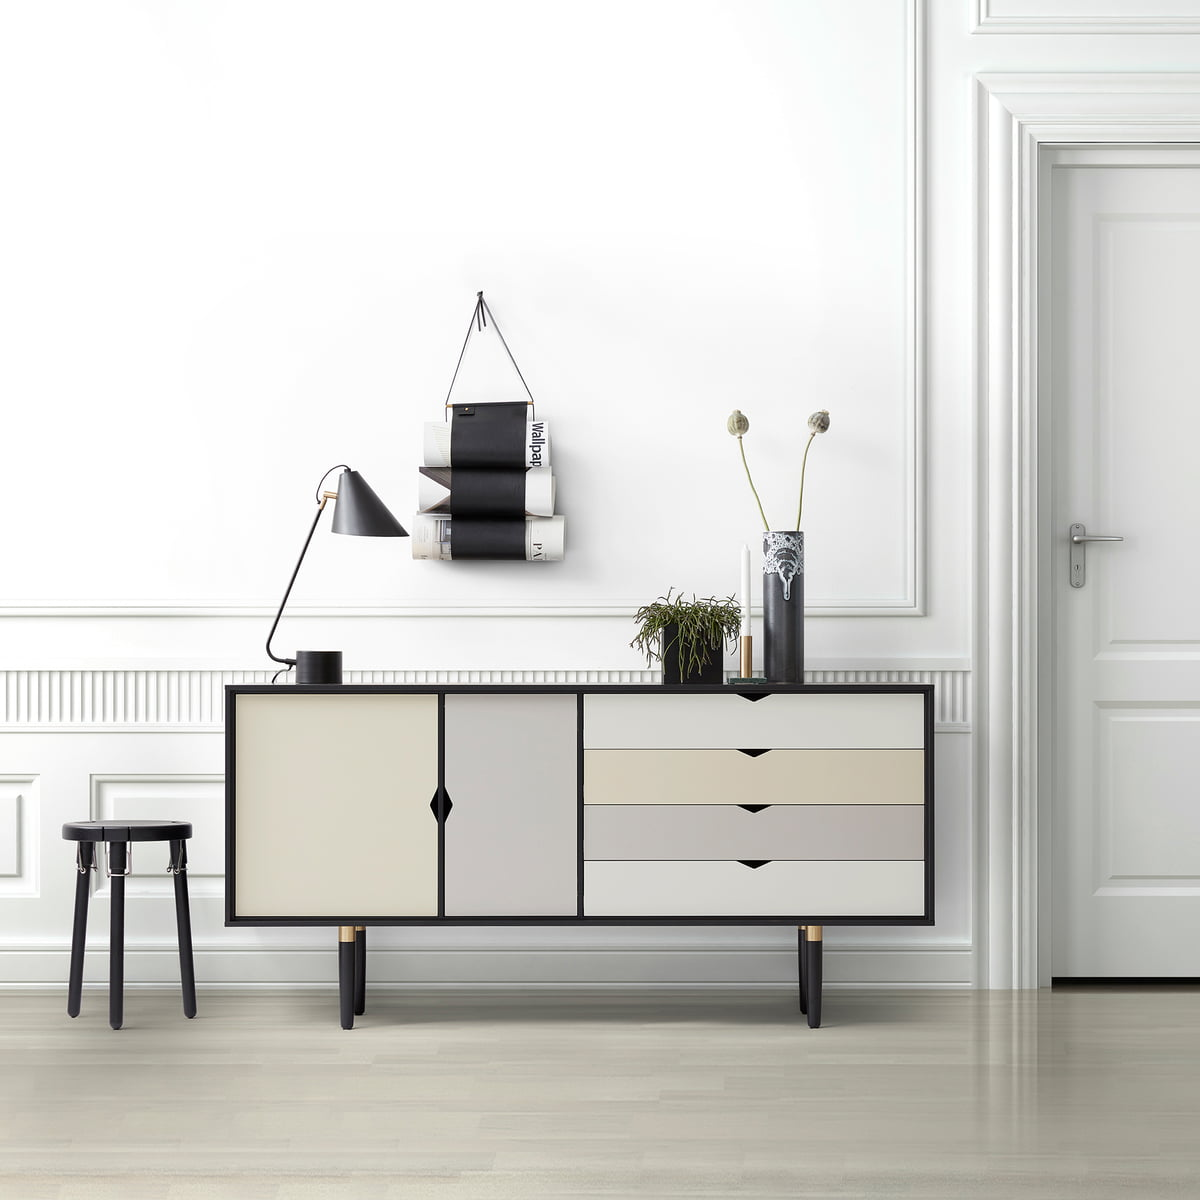 S6 Sideboard Multicoloured By Andersen Furniture